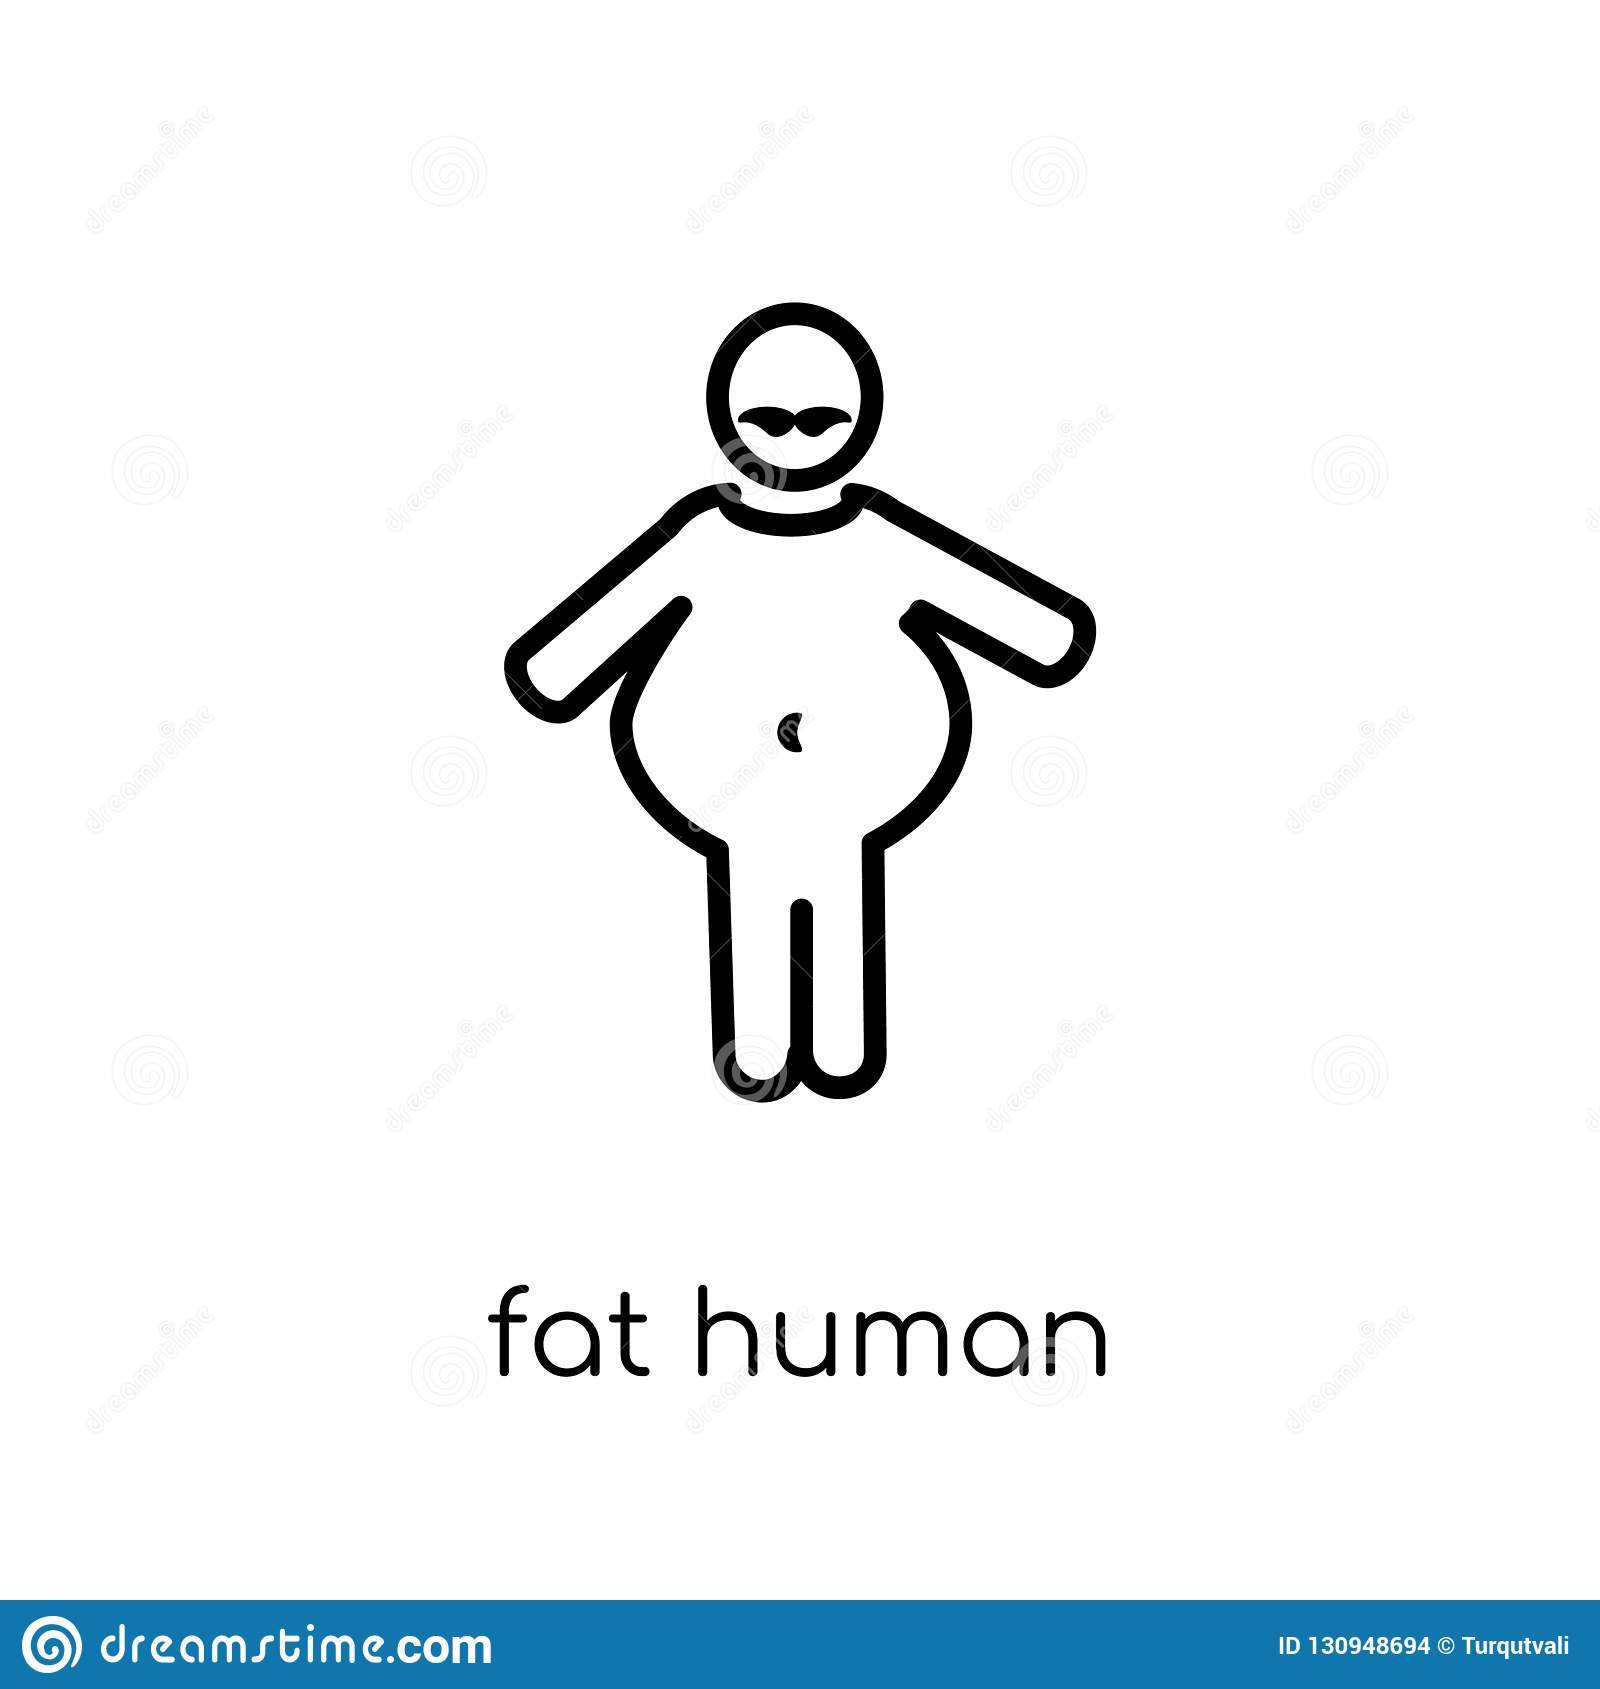 fat human icon. Trendy modern flat linear vector fat human icon